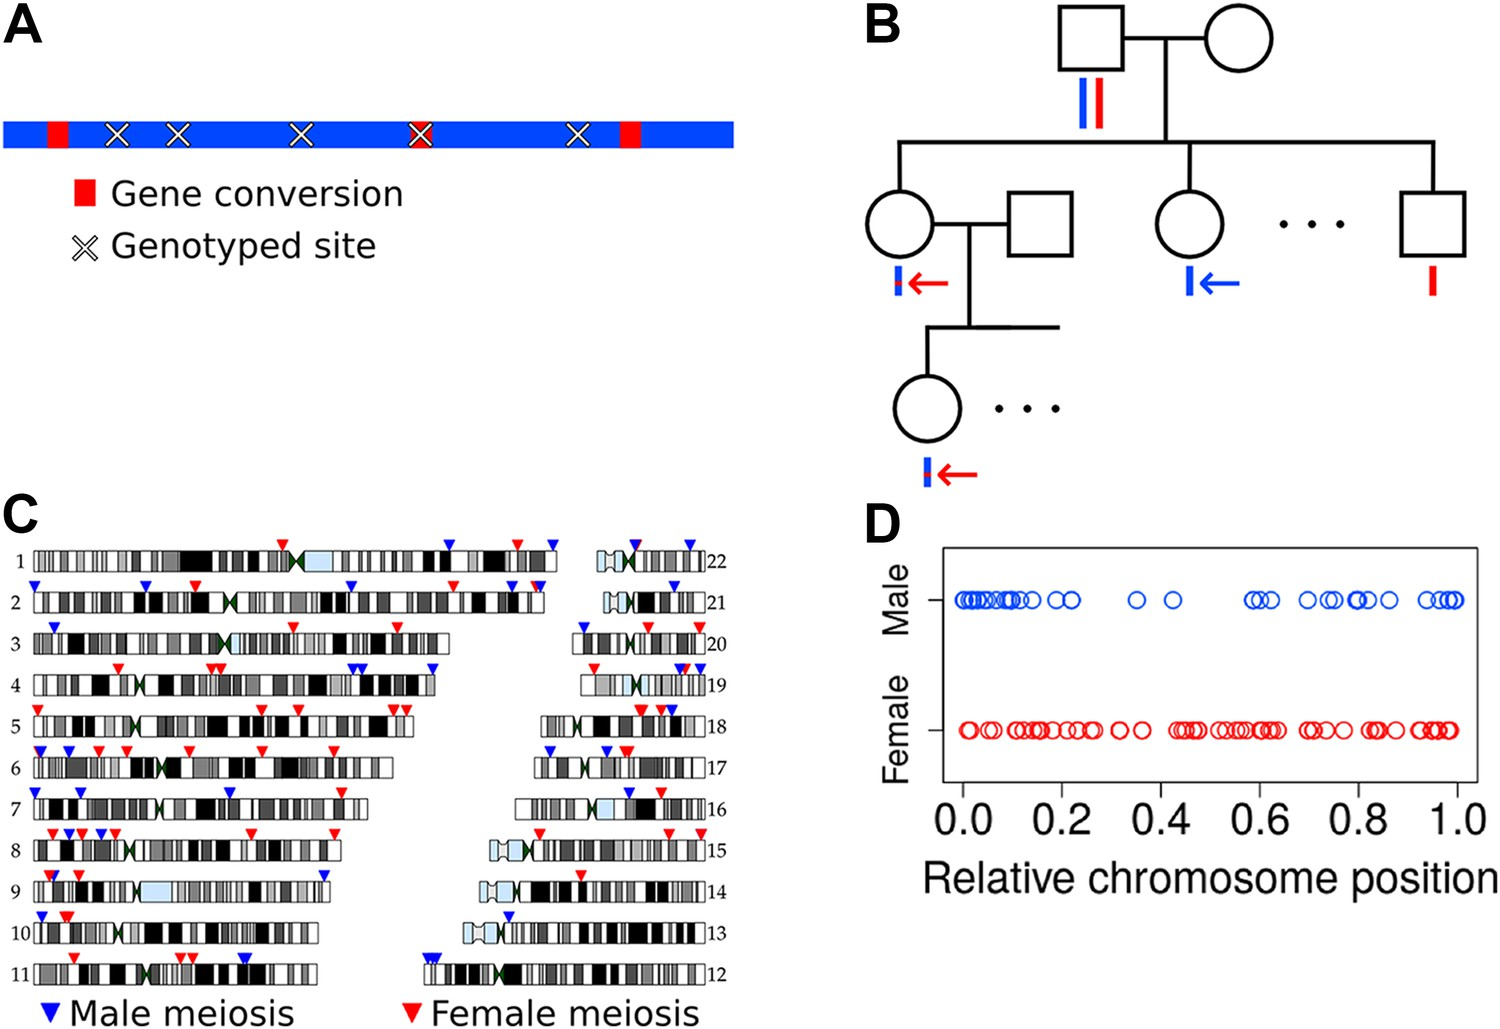 Non-crossover gene conversions show strong GC bias and